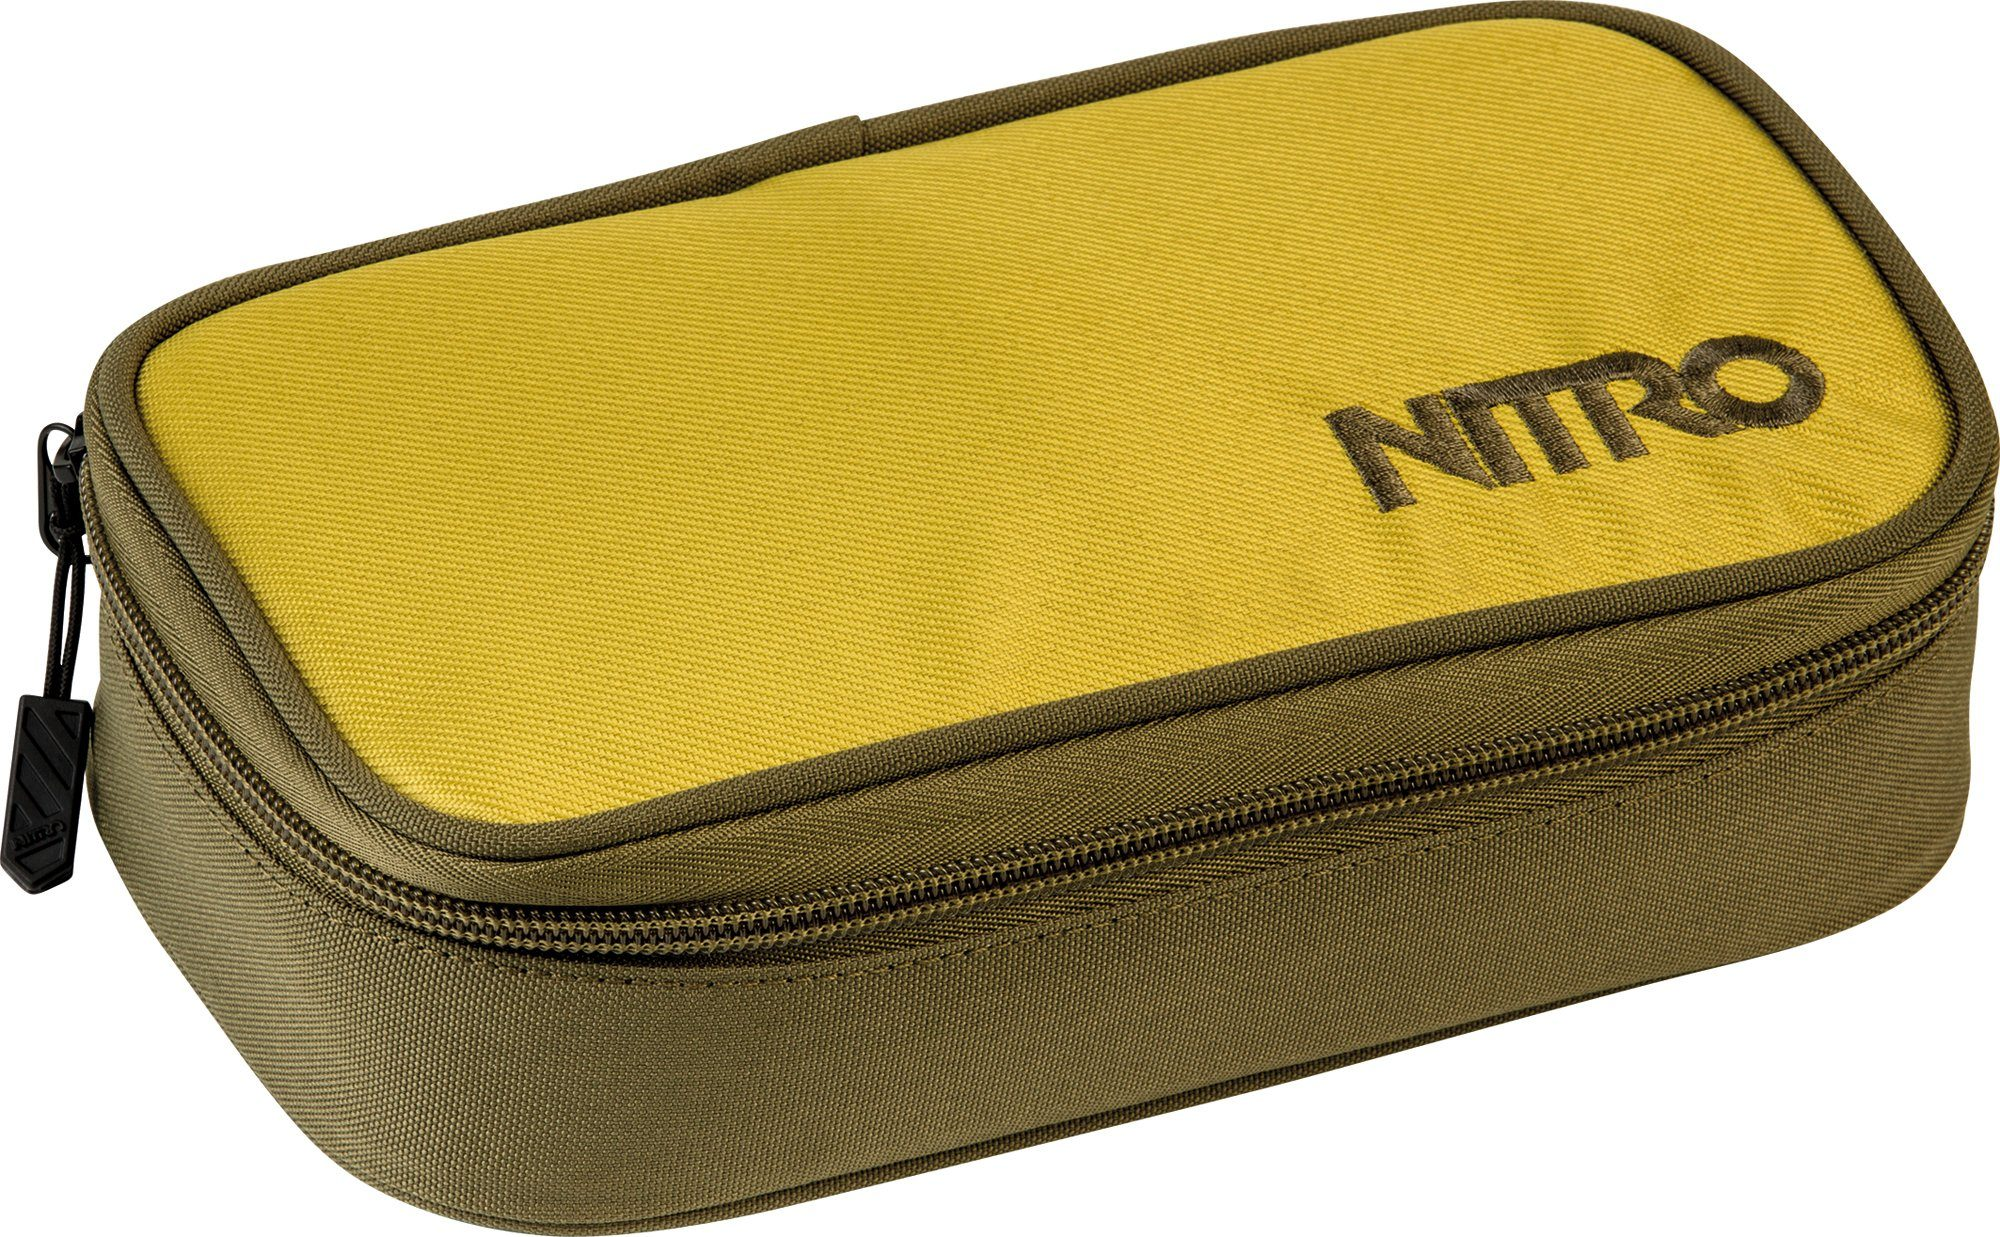 Nitro Federmäppchen, »Pencil Case XL Golden Mud«